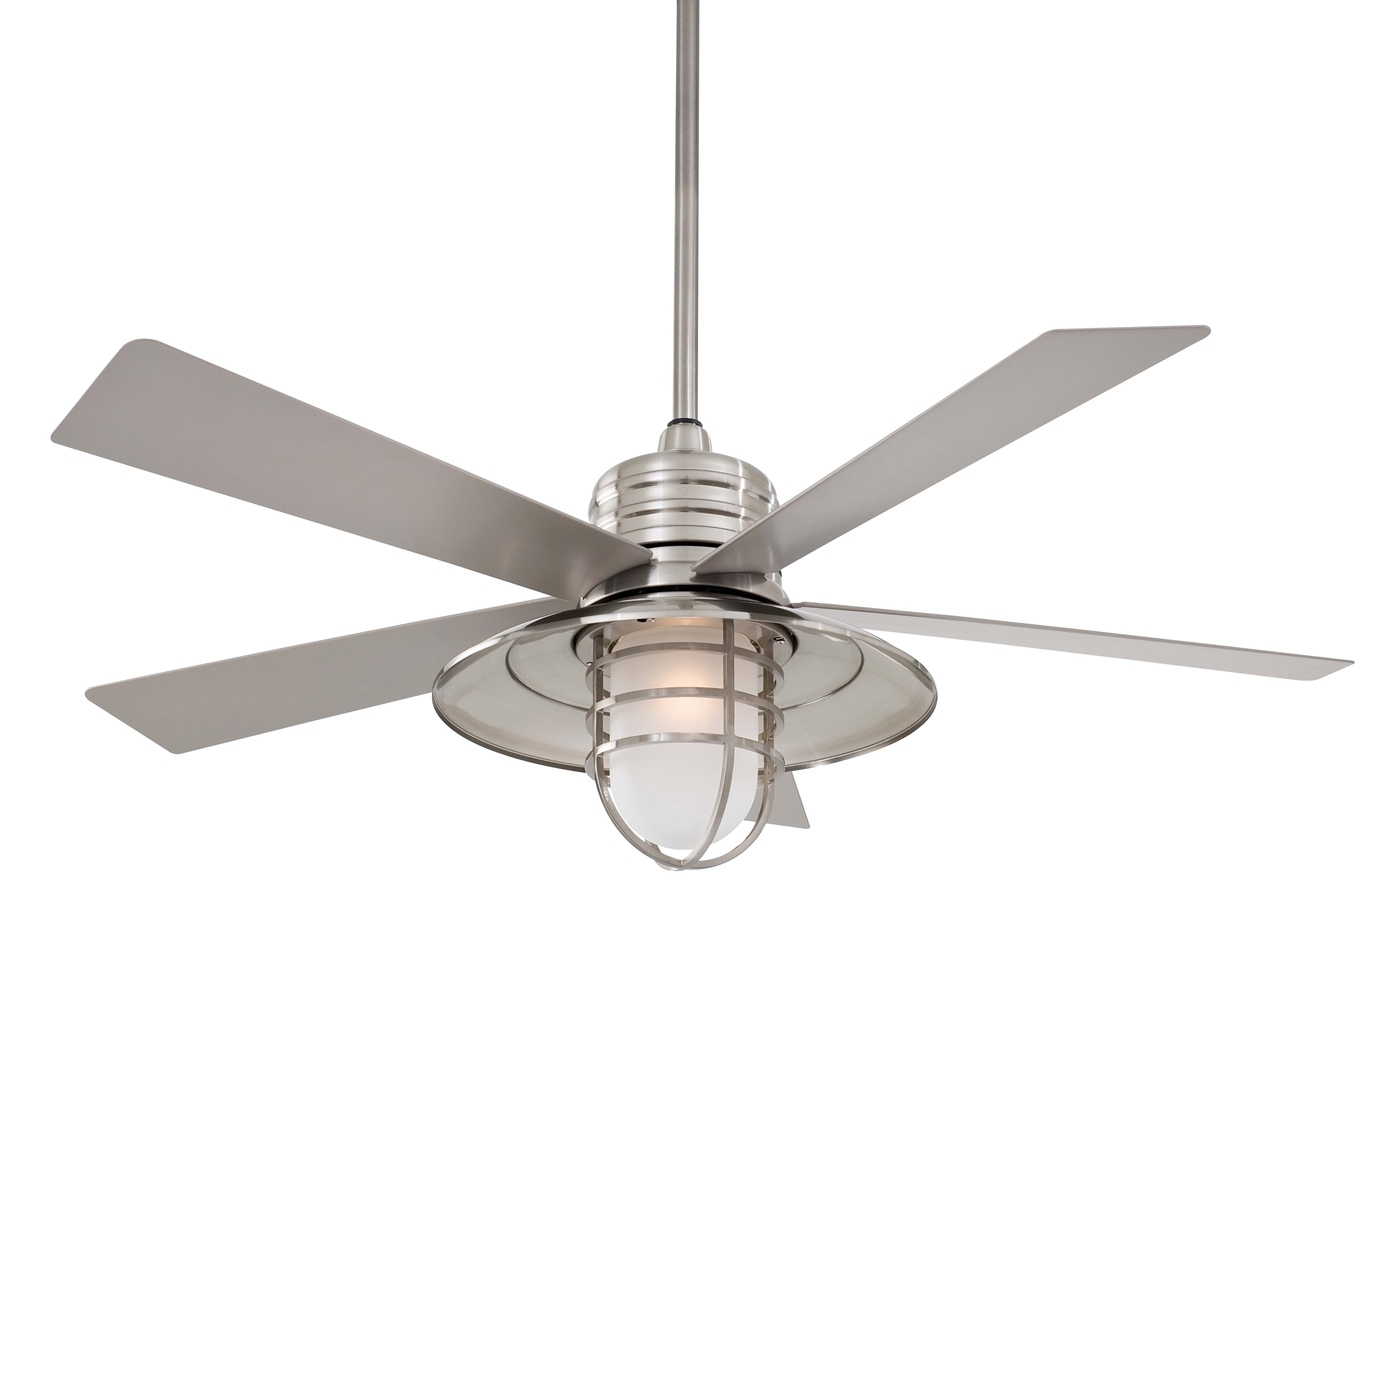 Favorite Rustic Outdoor Ceiling Fans For Ceiling Fan: Best Outdoor Ceiling Fans Design Ceiling Fan With Light (View 4 of 20)